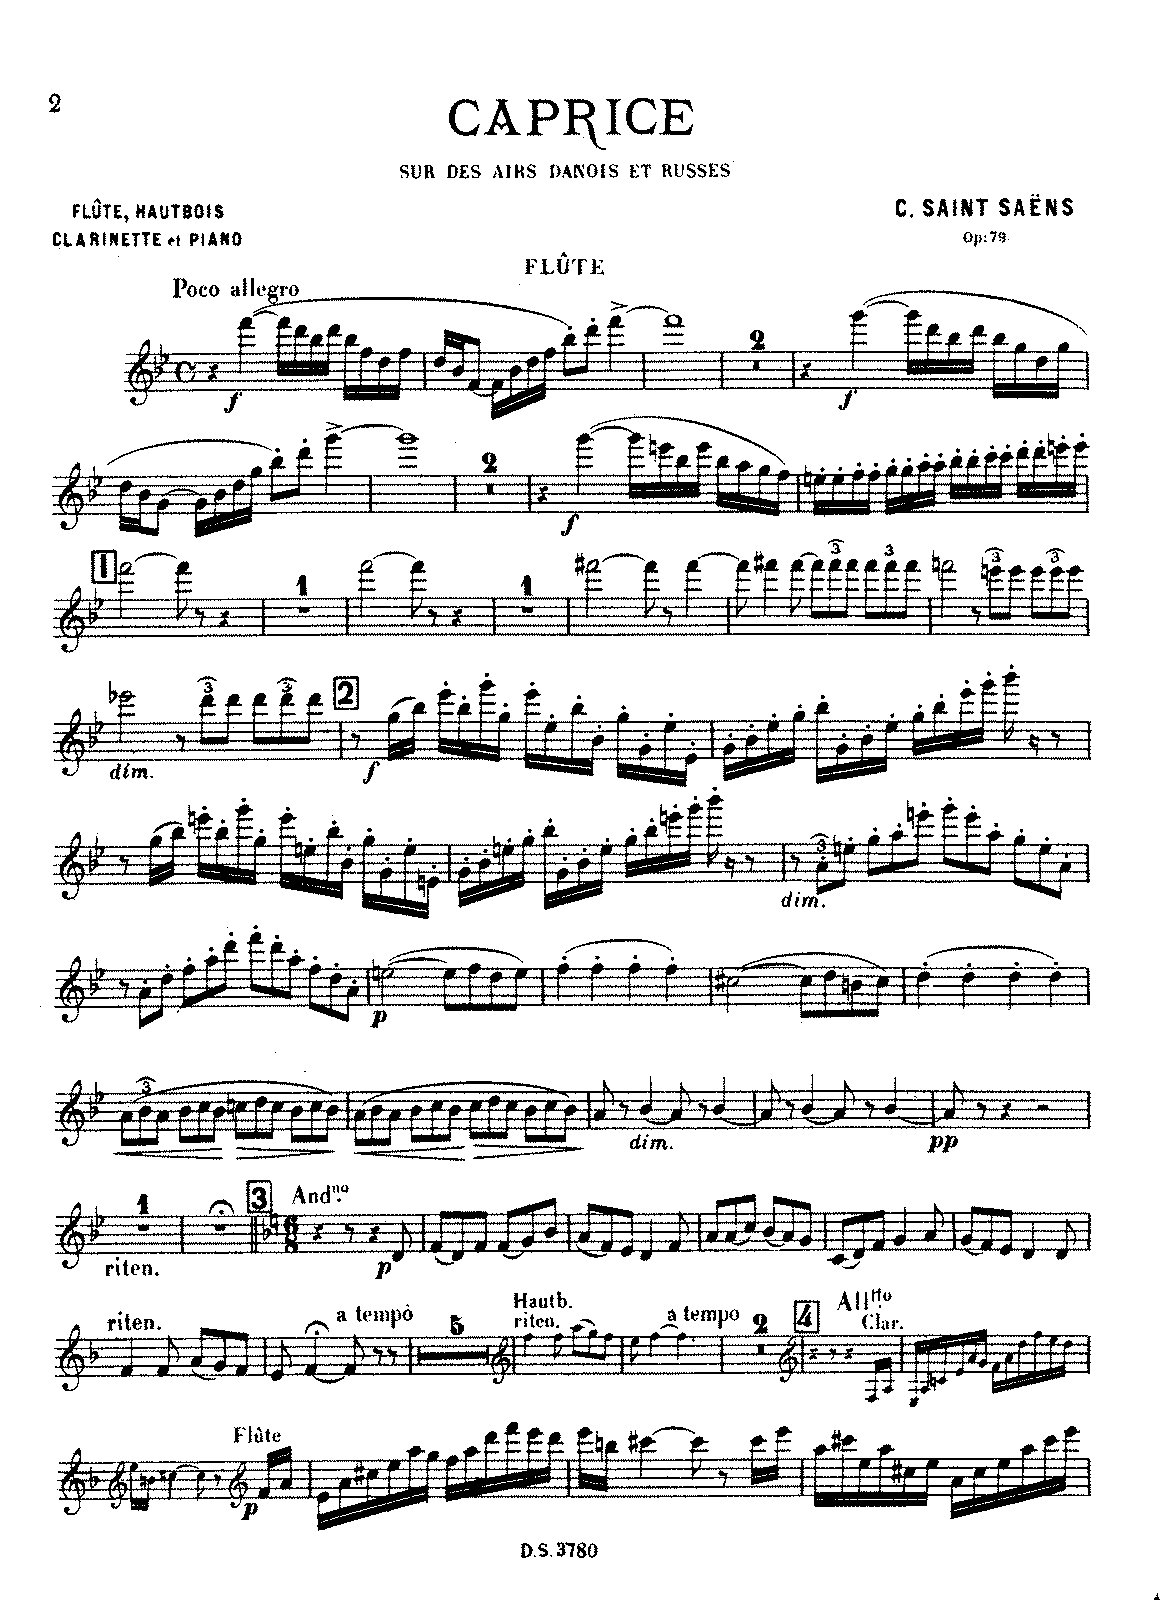 Saint-Saëns - Caprice, Op.79 (Fl, Ob, Cl and Piano).pdf